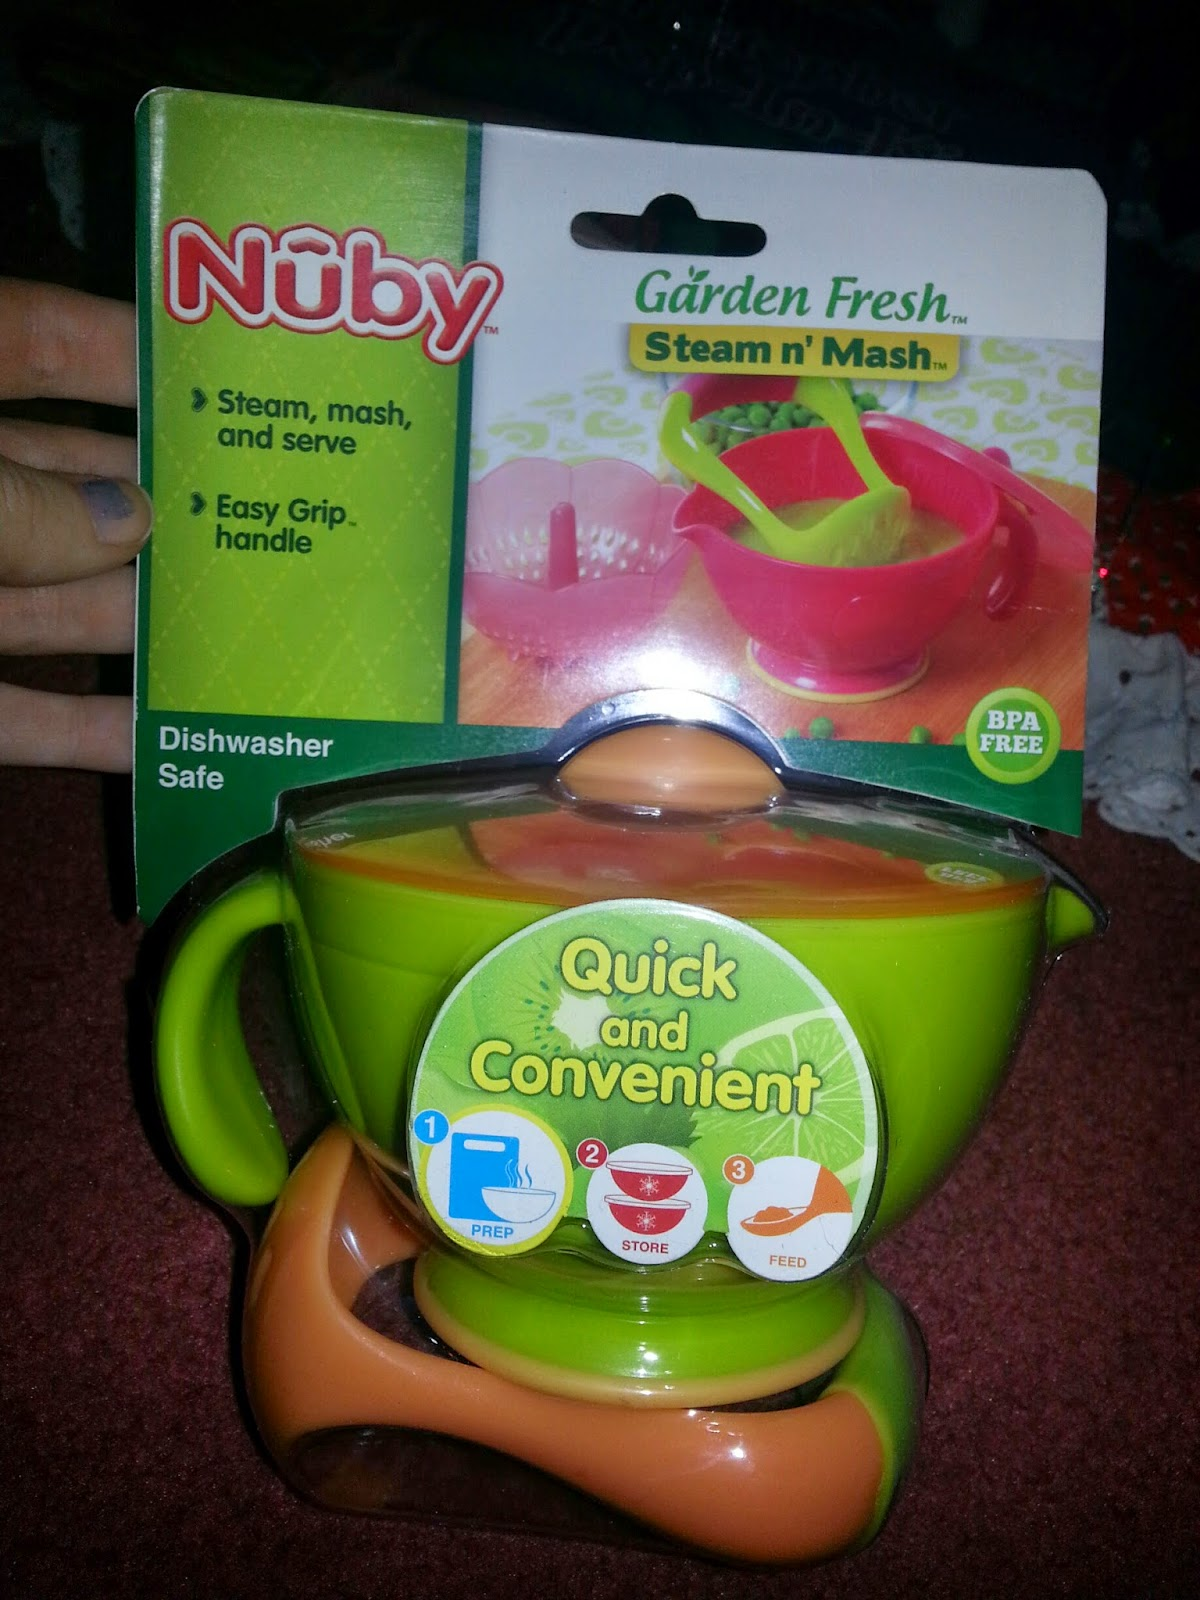 Momma4life Nuby Garden Fresh Steam N Mash Review Giveaway